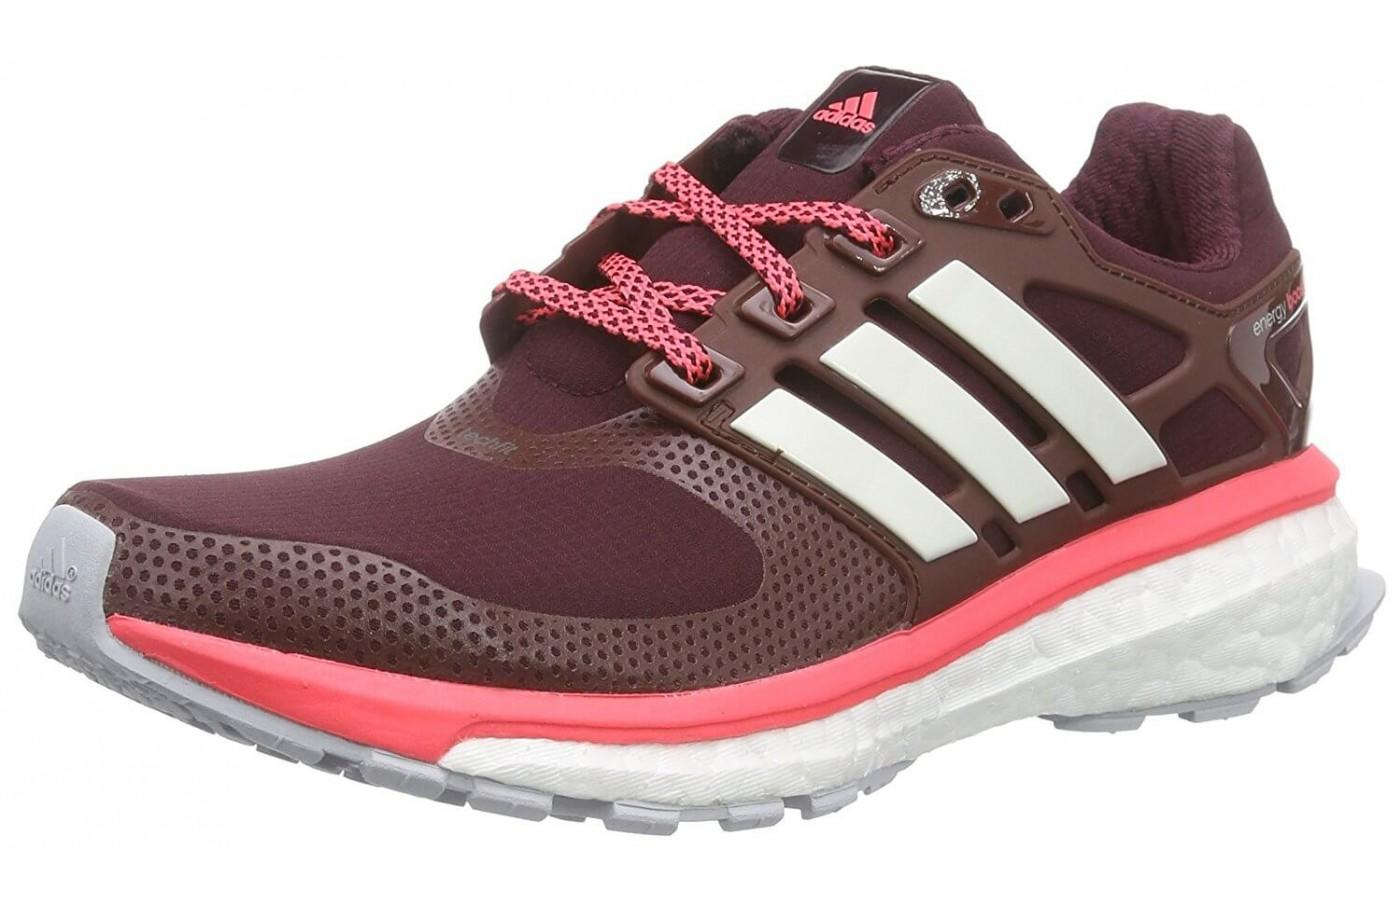 ee70f94f1cb1d adidas Energy Boost 3 Collegiate Burgandy Energy S17 Core Black